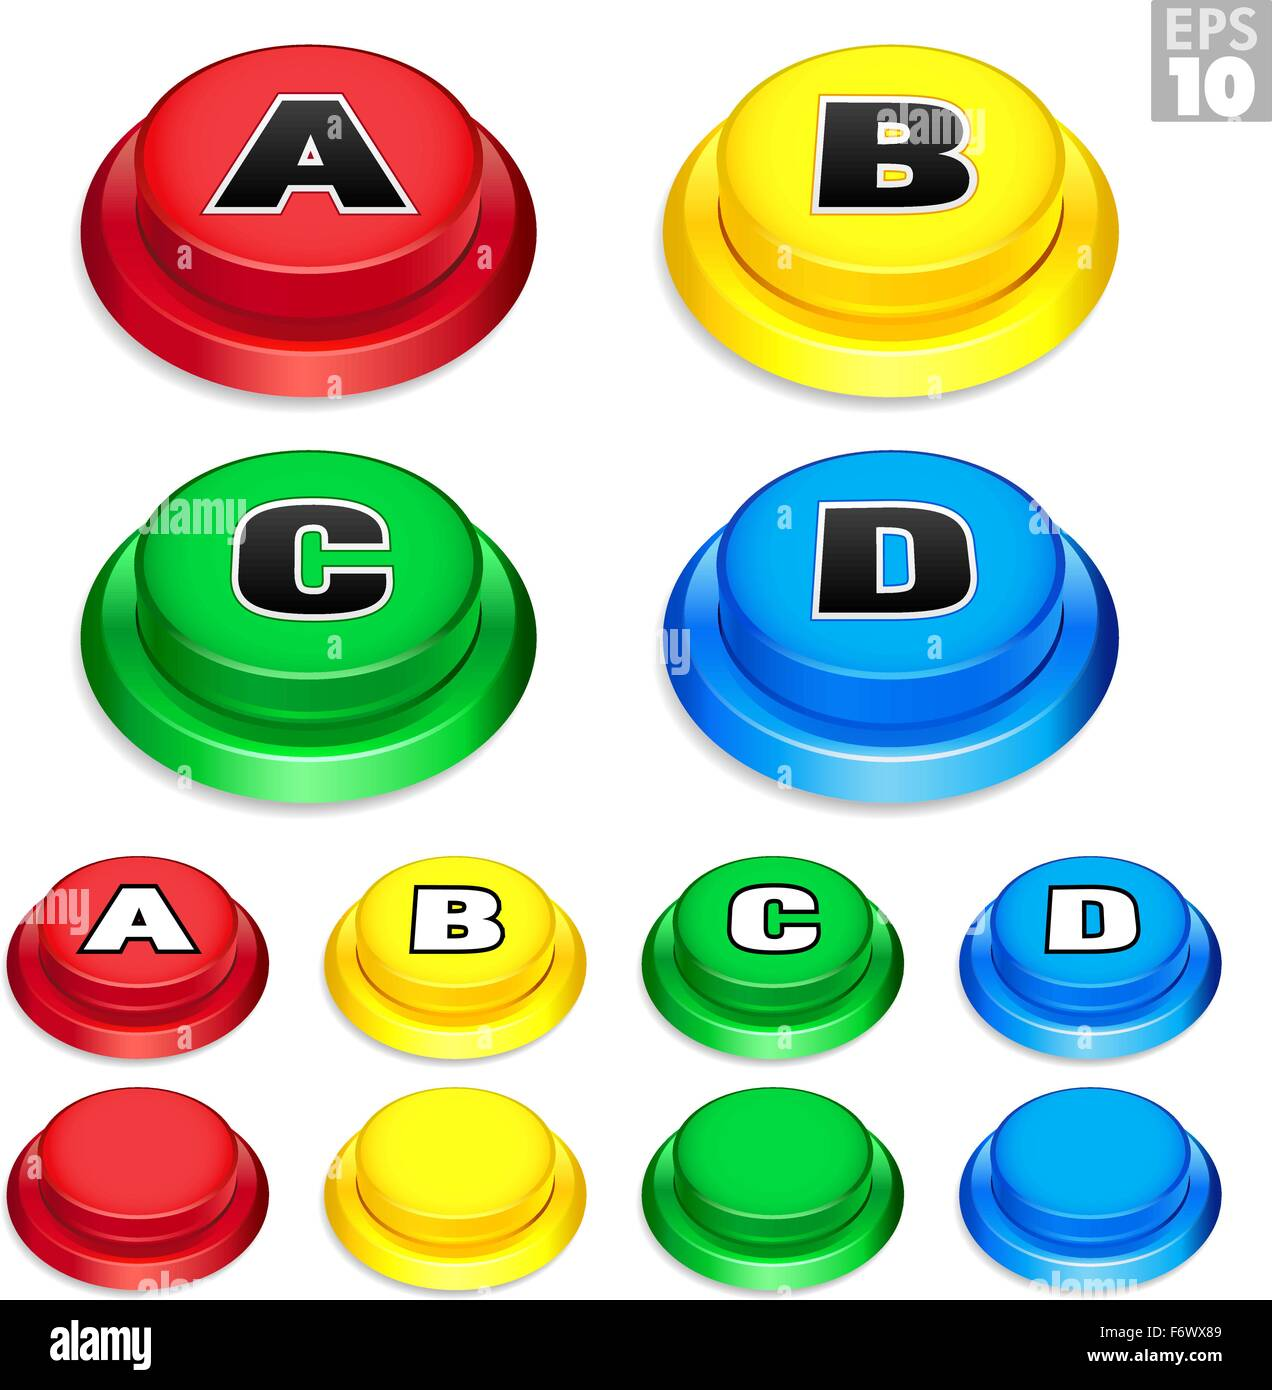 Arcade momentary push buttons In Red, Yellow, Green, and Blue Colors For Retro Games. - Stock Vector